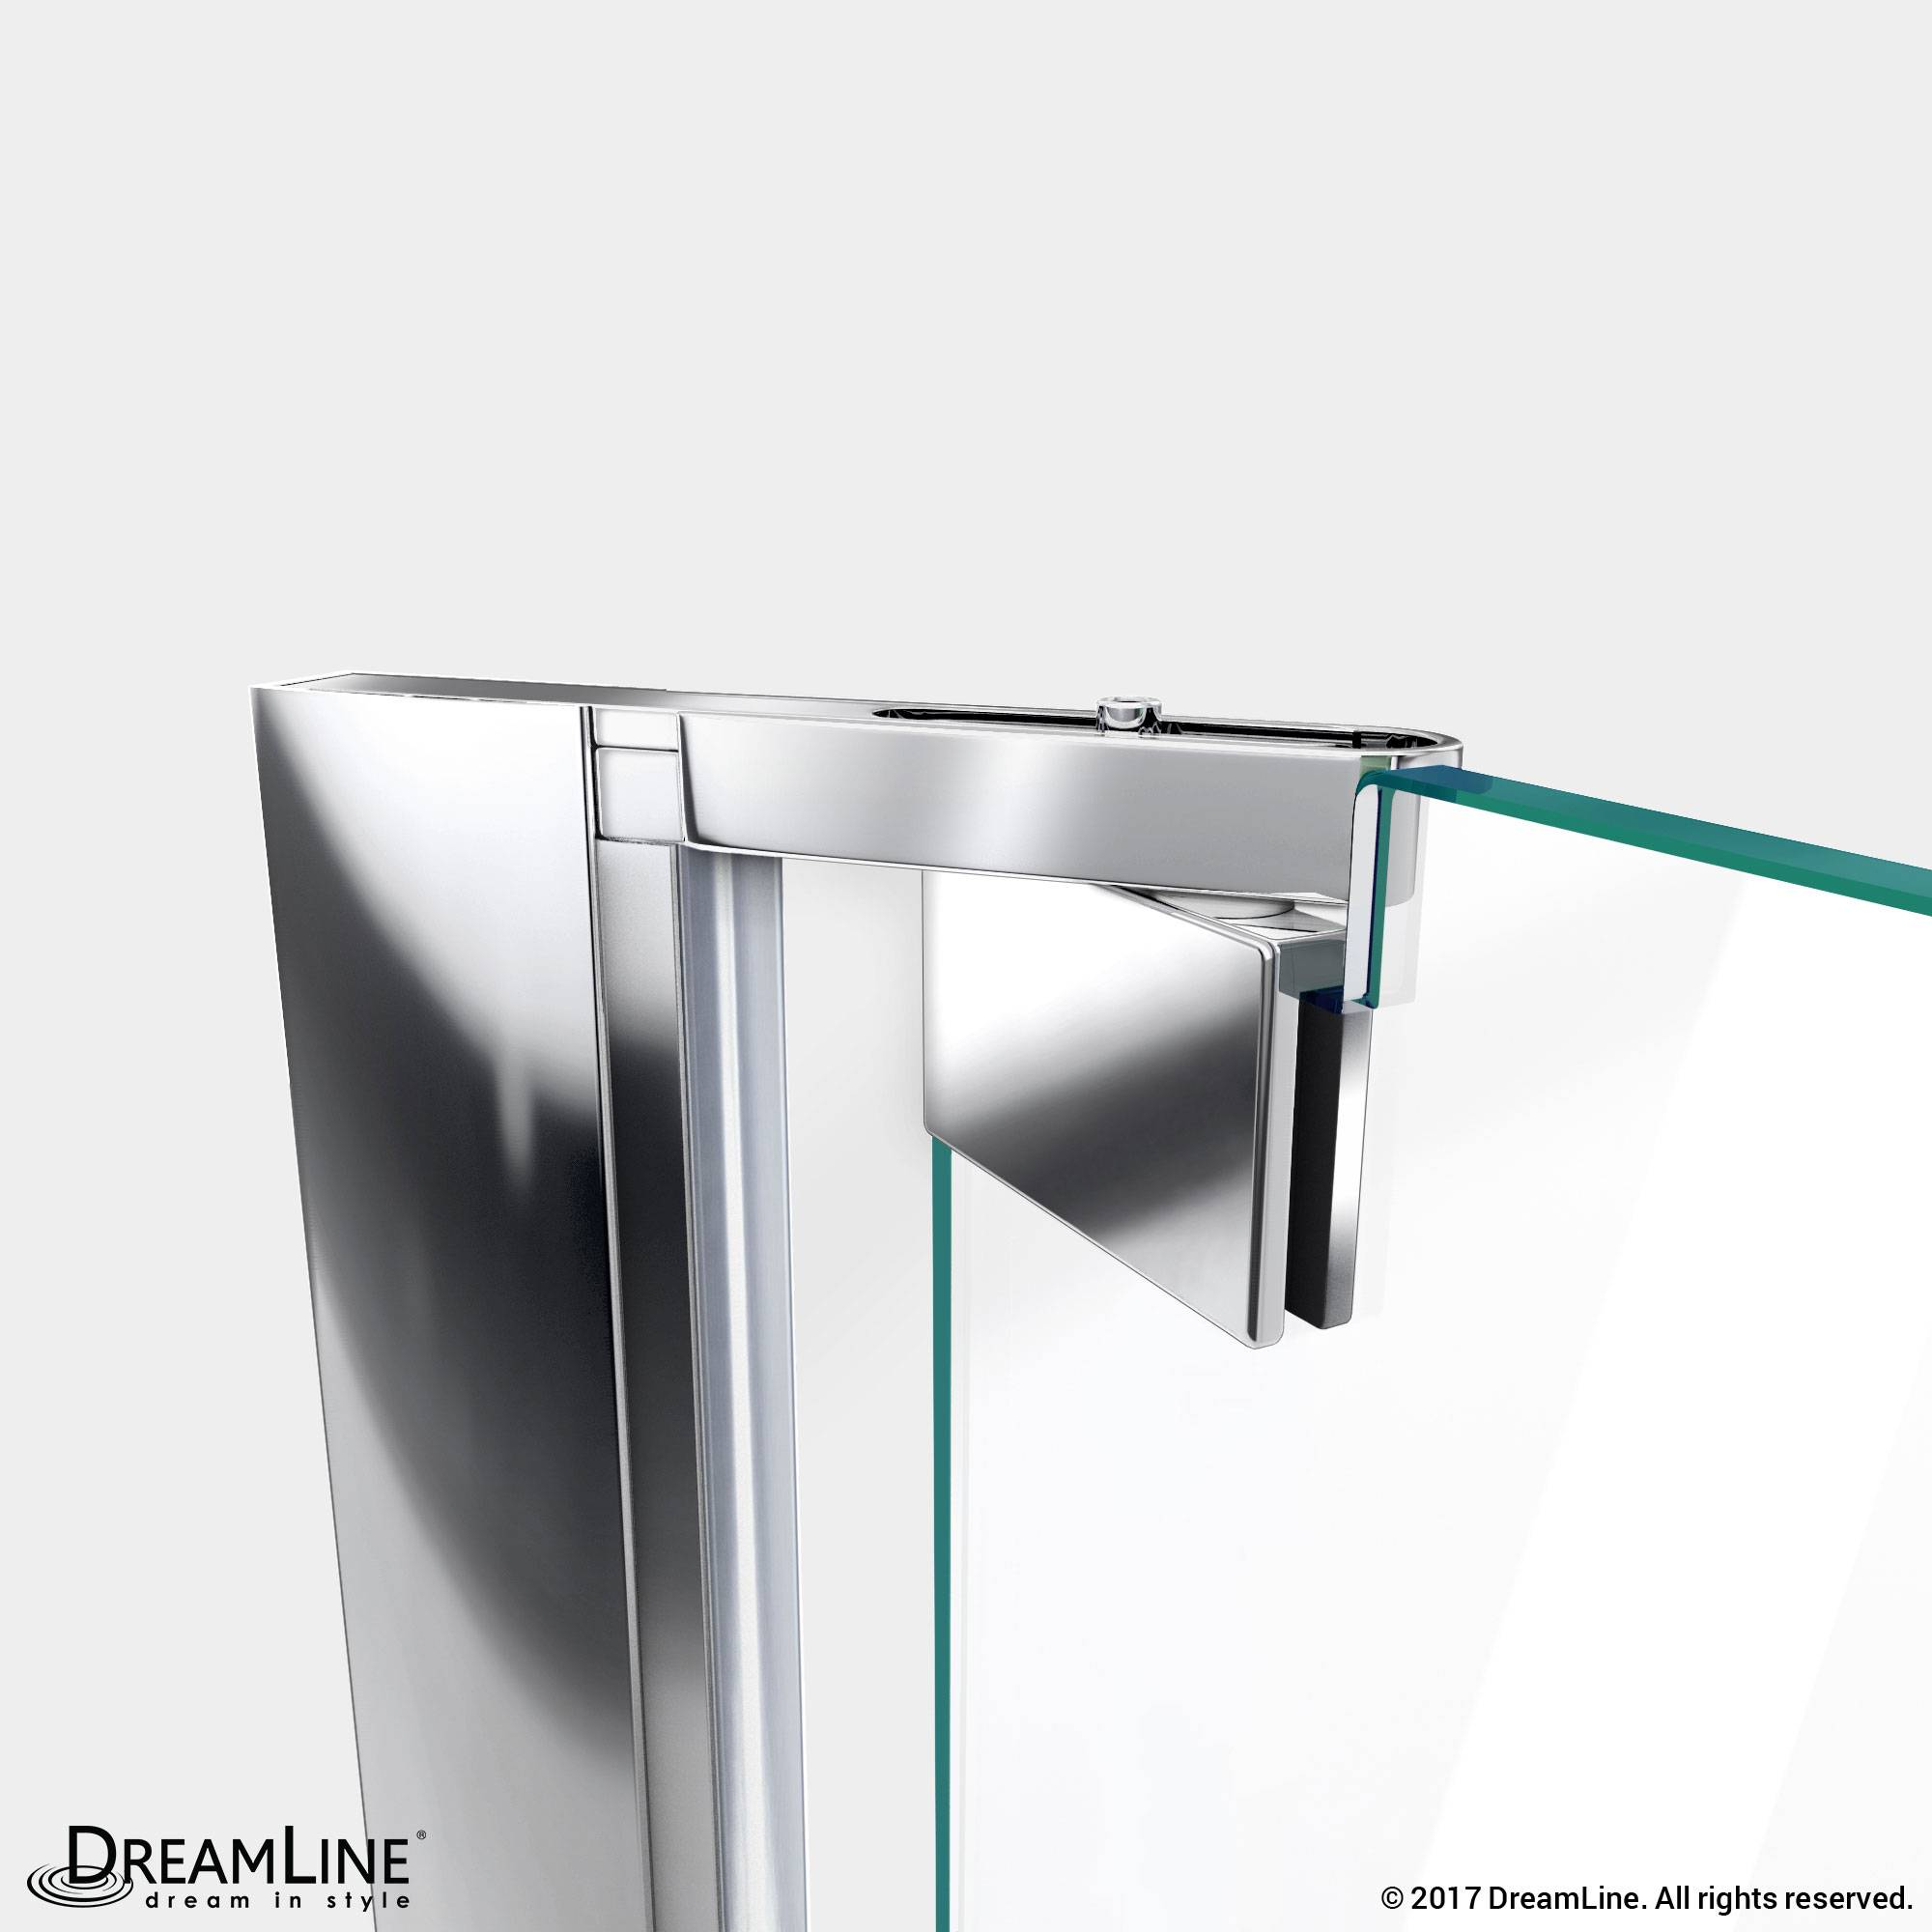 DreamLine Shower Door Pivot in Chrome Finish